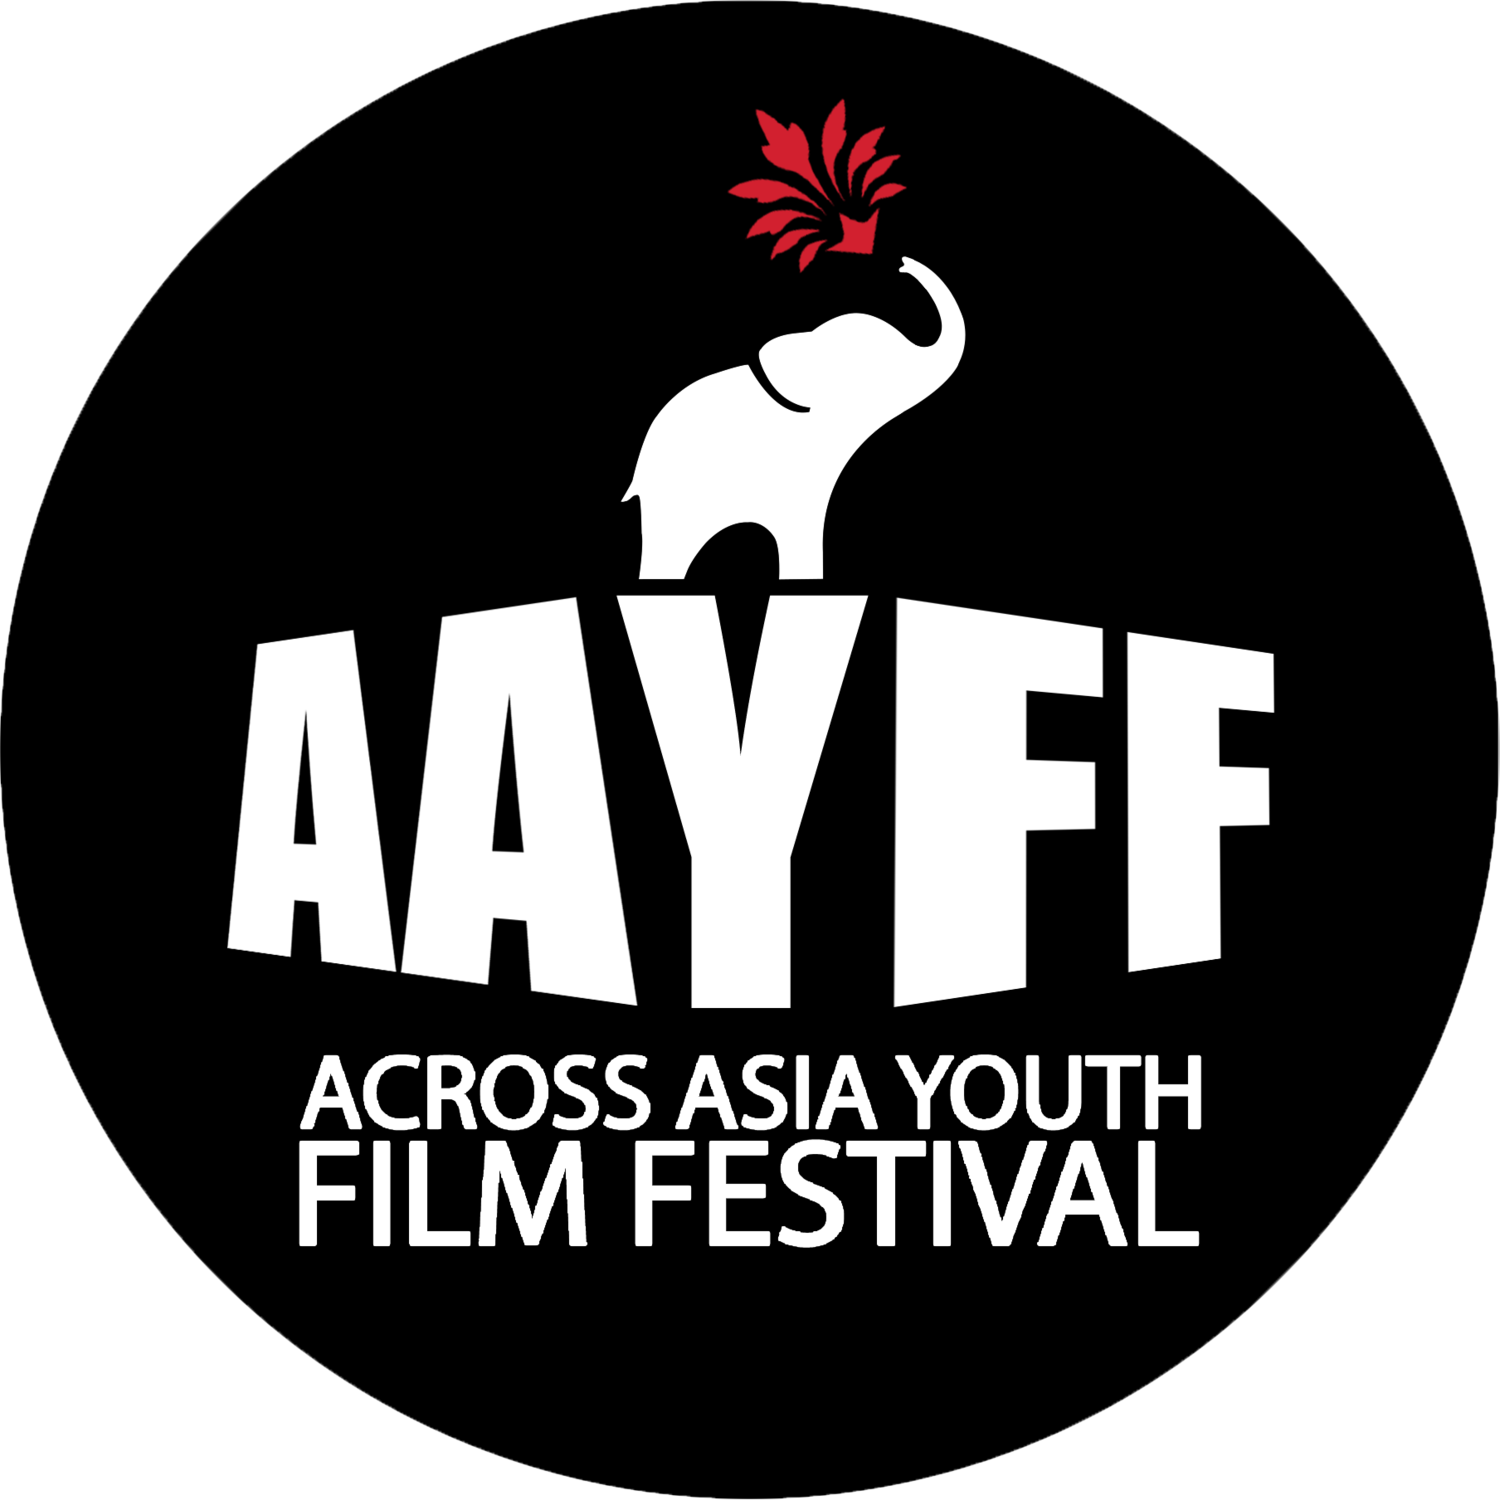 Across Asia Youth Film Festival